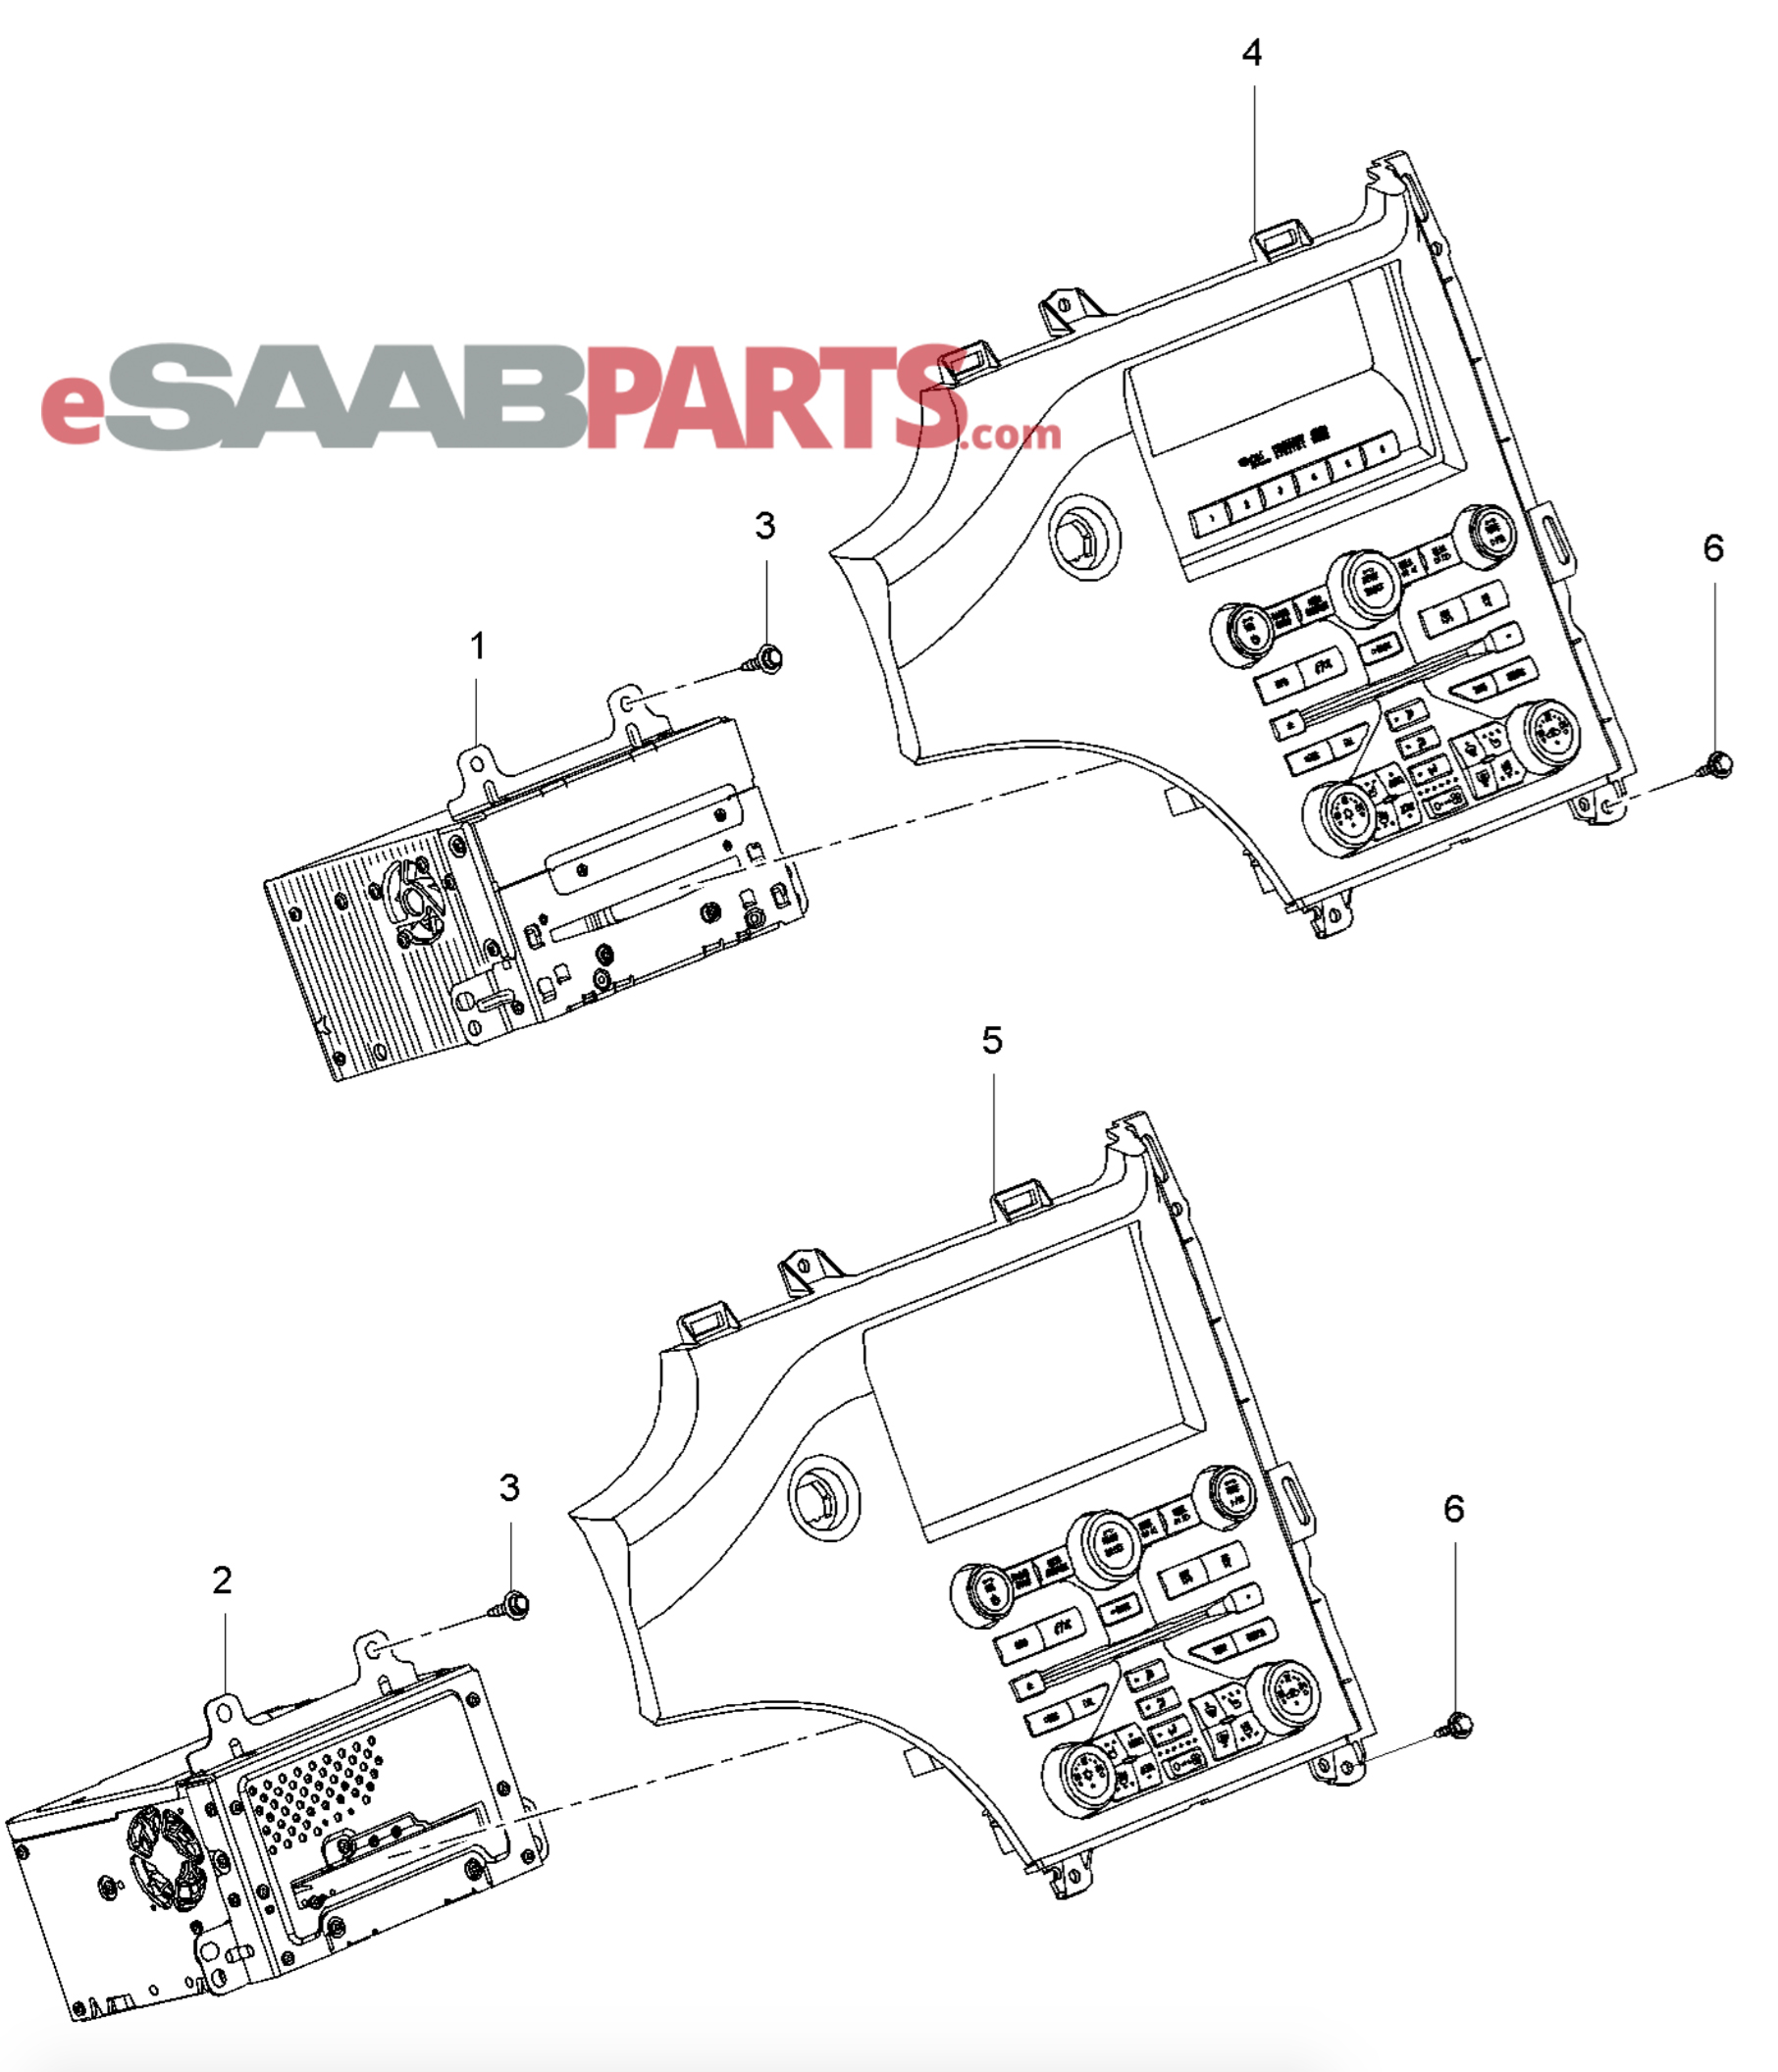 Saab 9 4x 168 Electrical Parts Audio Wiring Diagram For Heated Seats Related Radio Navigation System